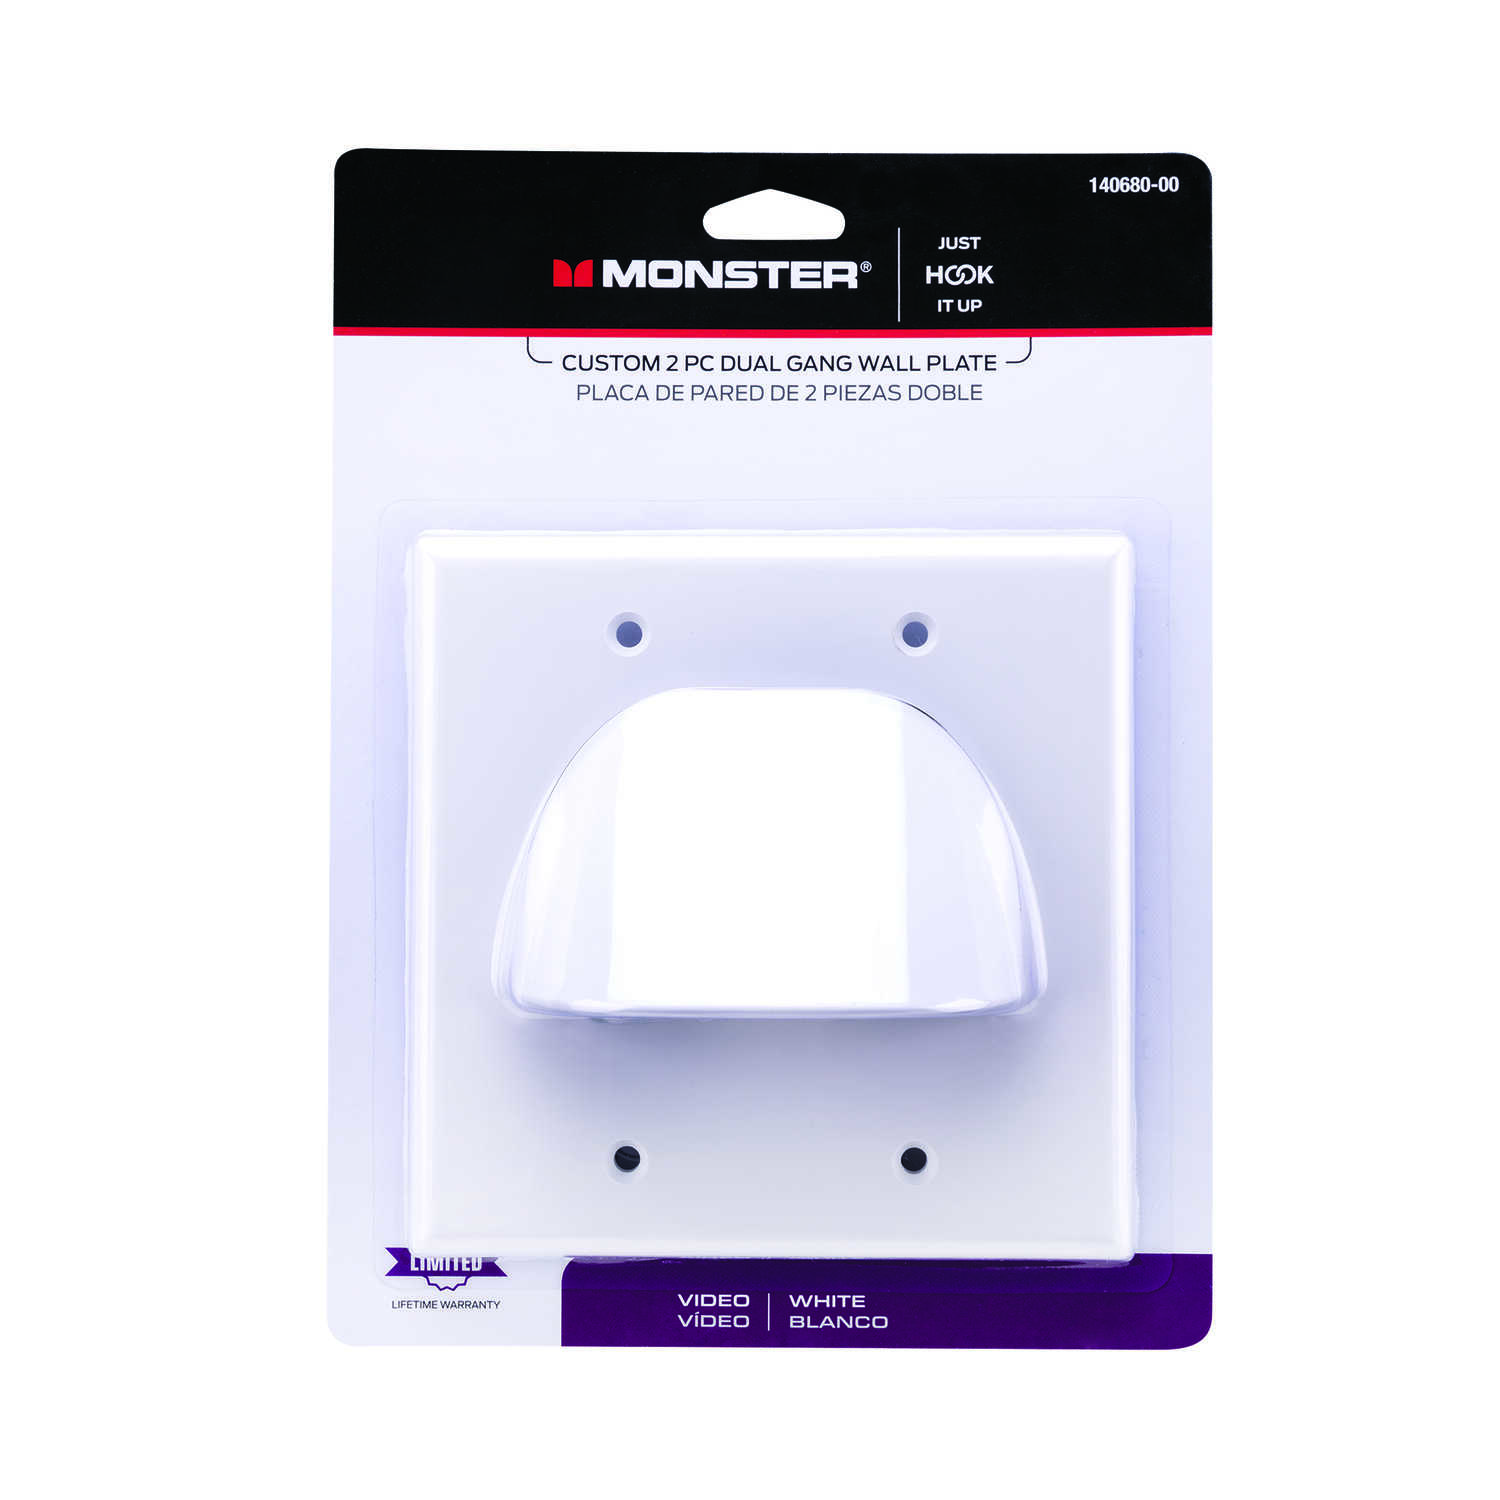 Monster Cable  Just Hook It Up  White  2 gang Plastic  Home Theater  Wall Plate  1 pk